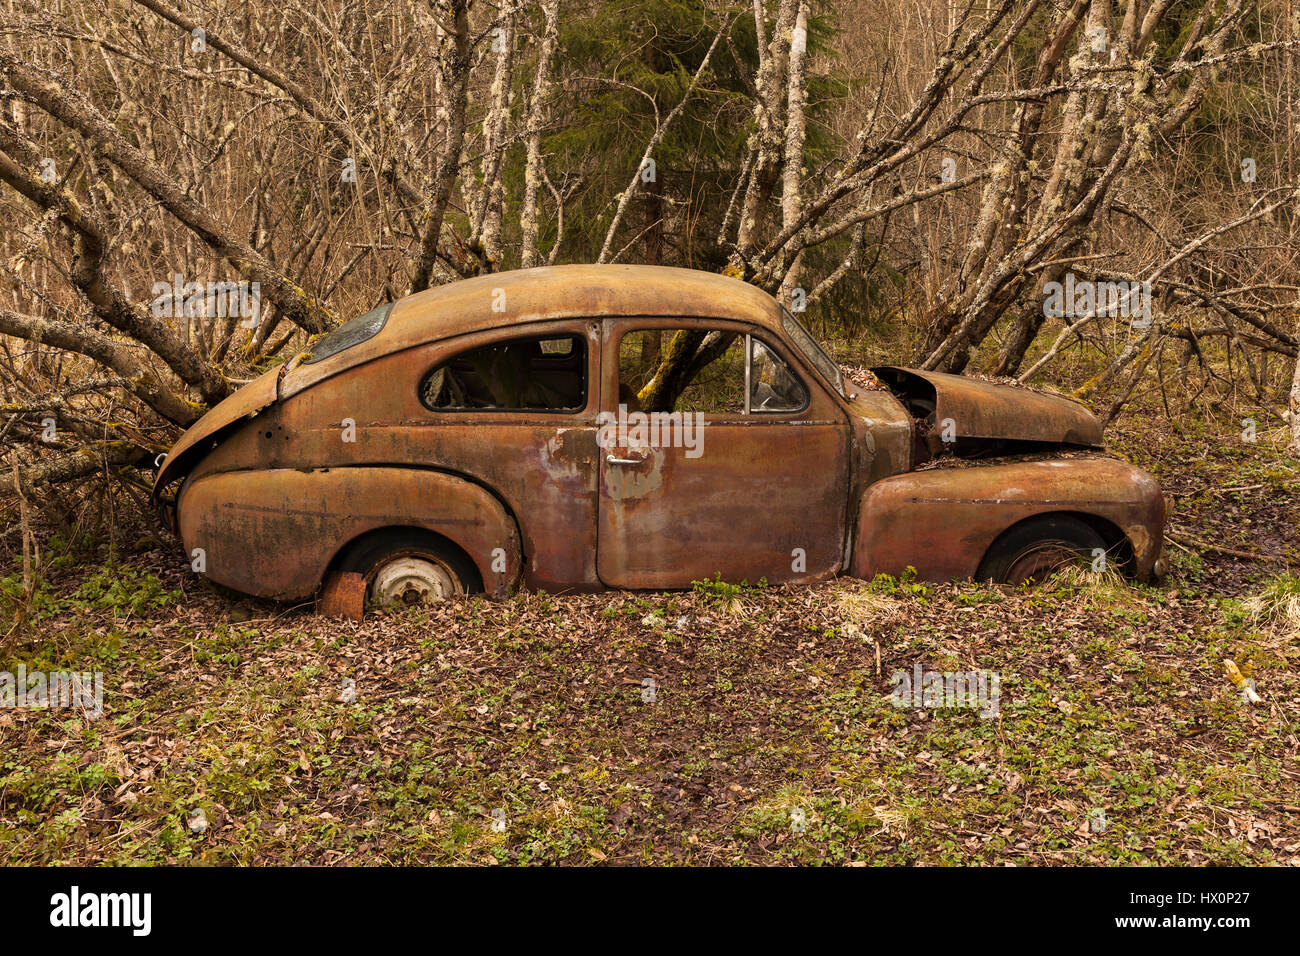 Old Fashioned Junkyard